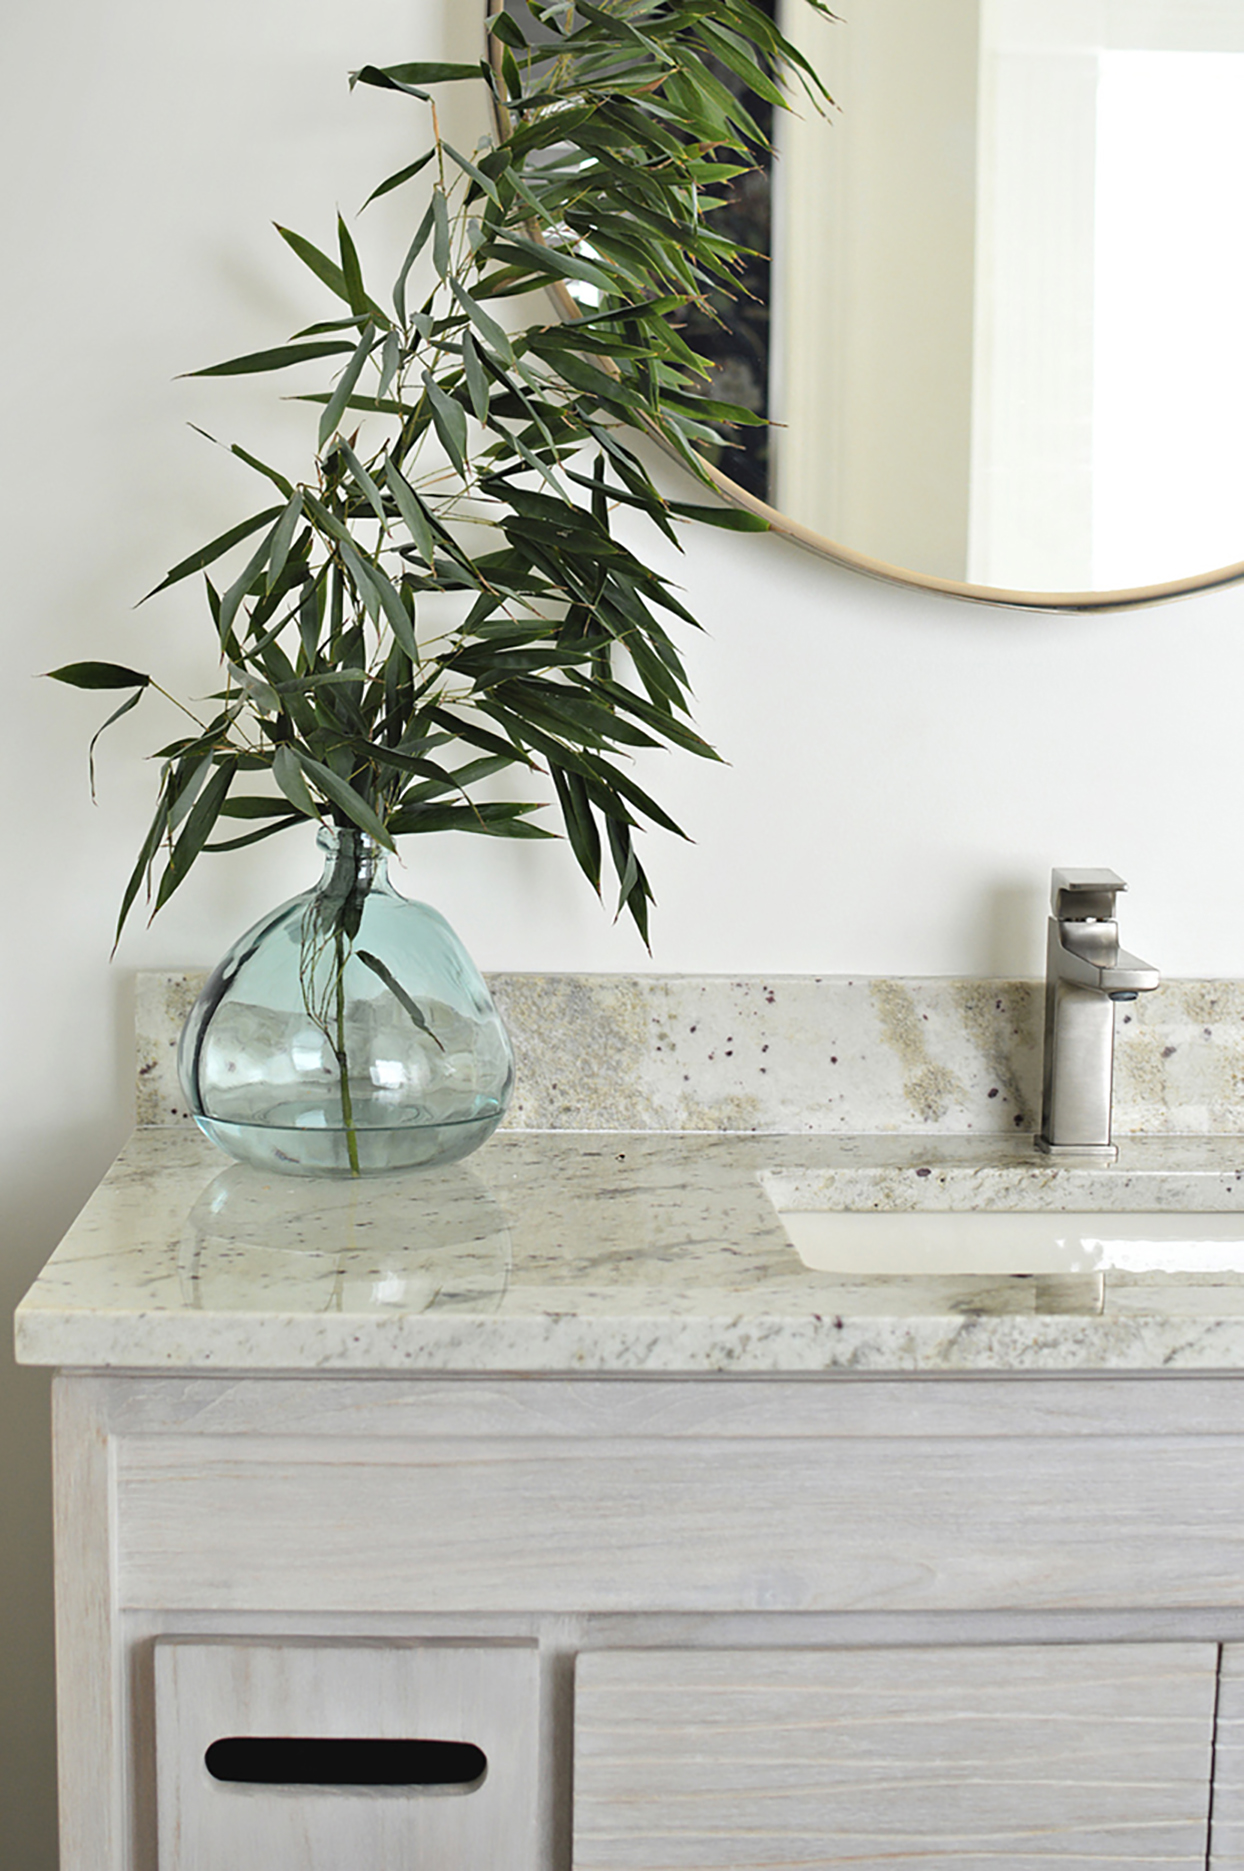 bathroom counter and sink area with glass vase and plant